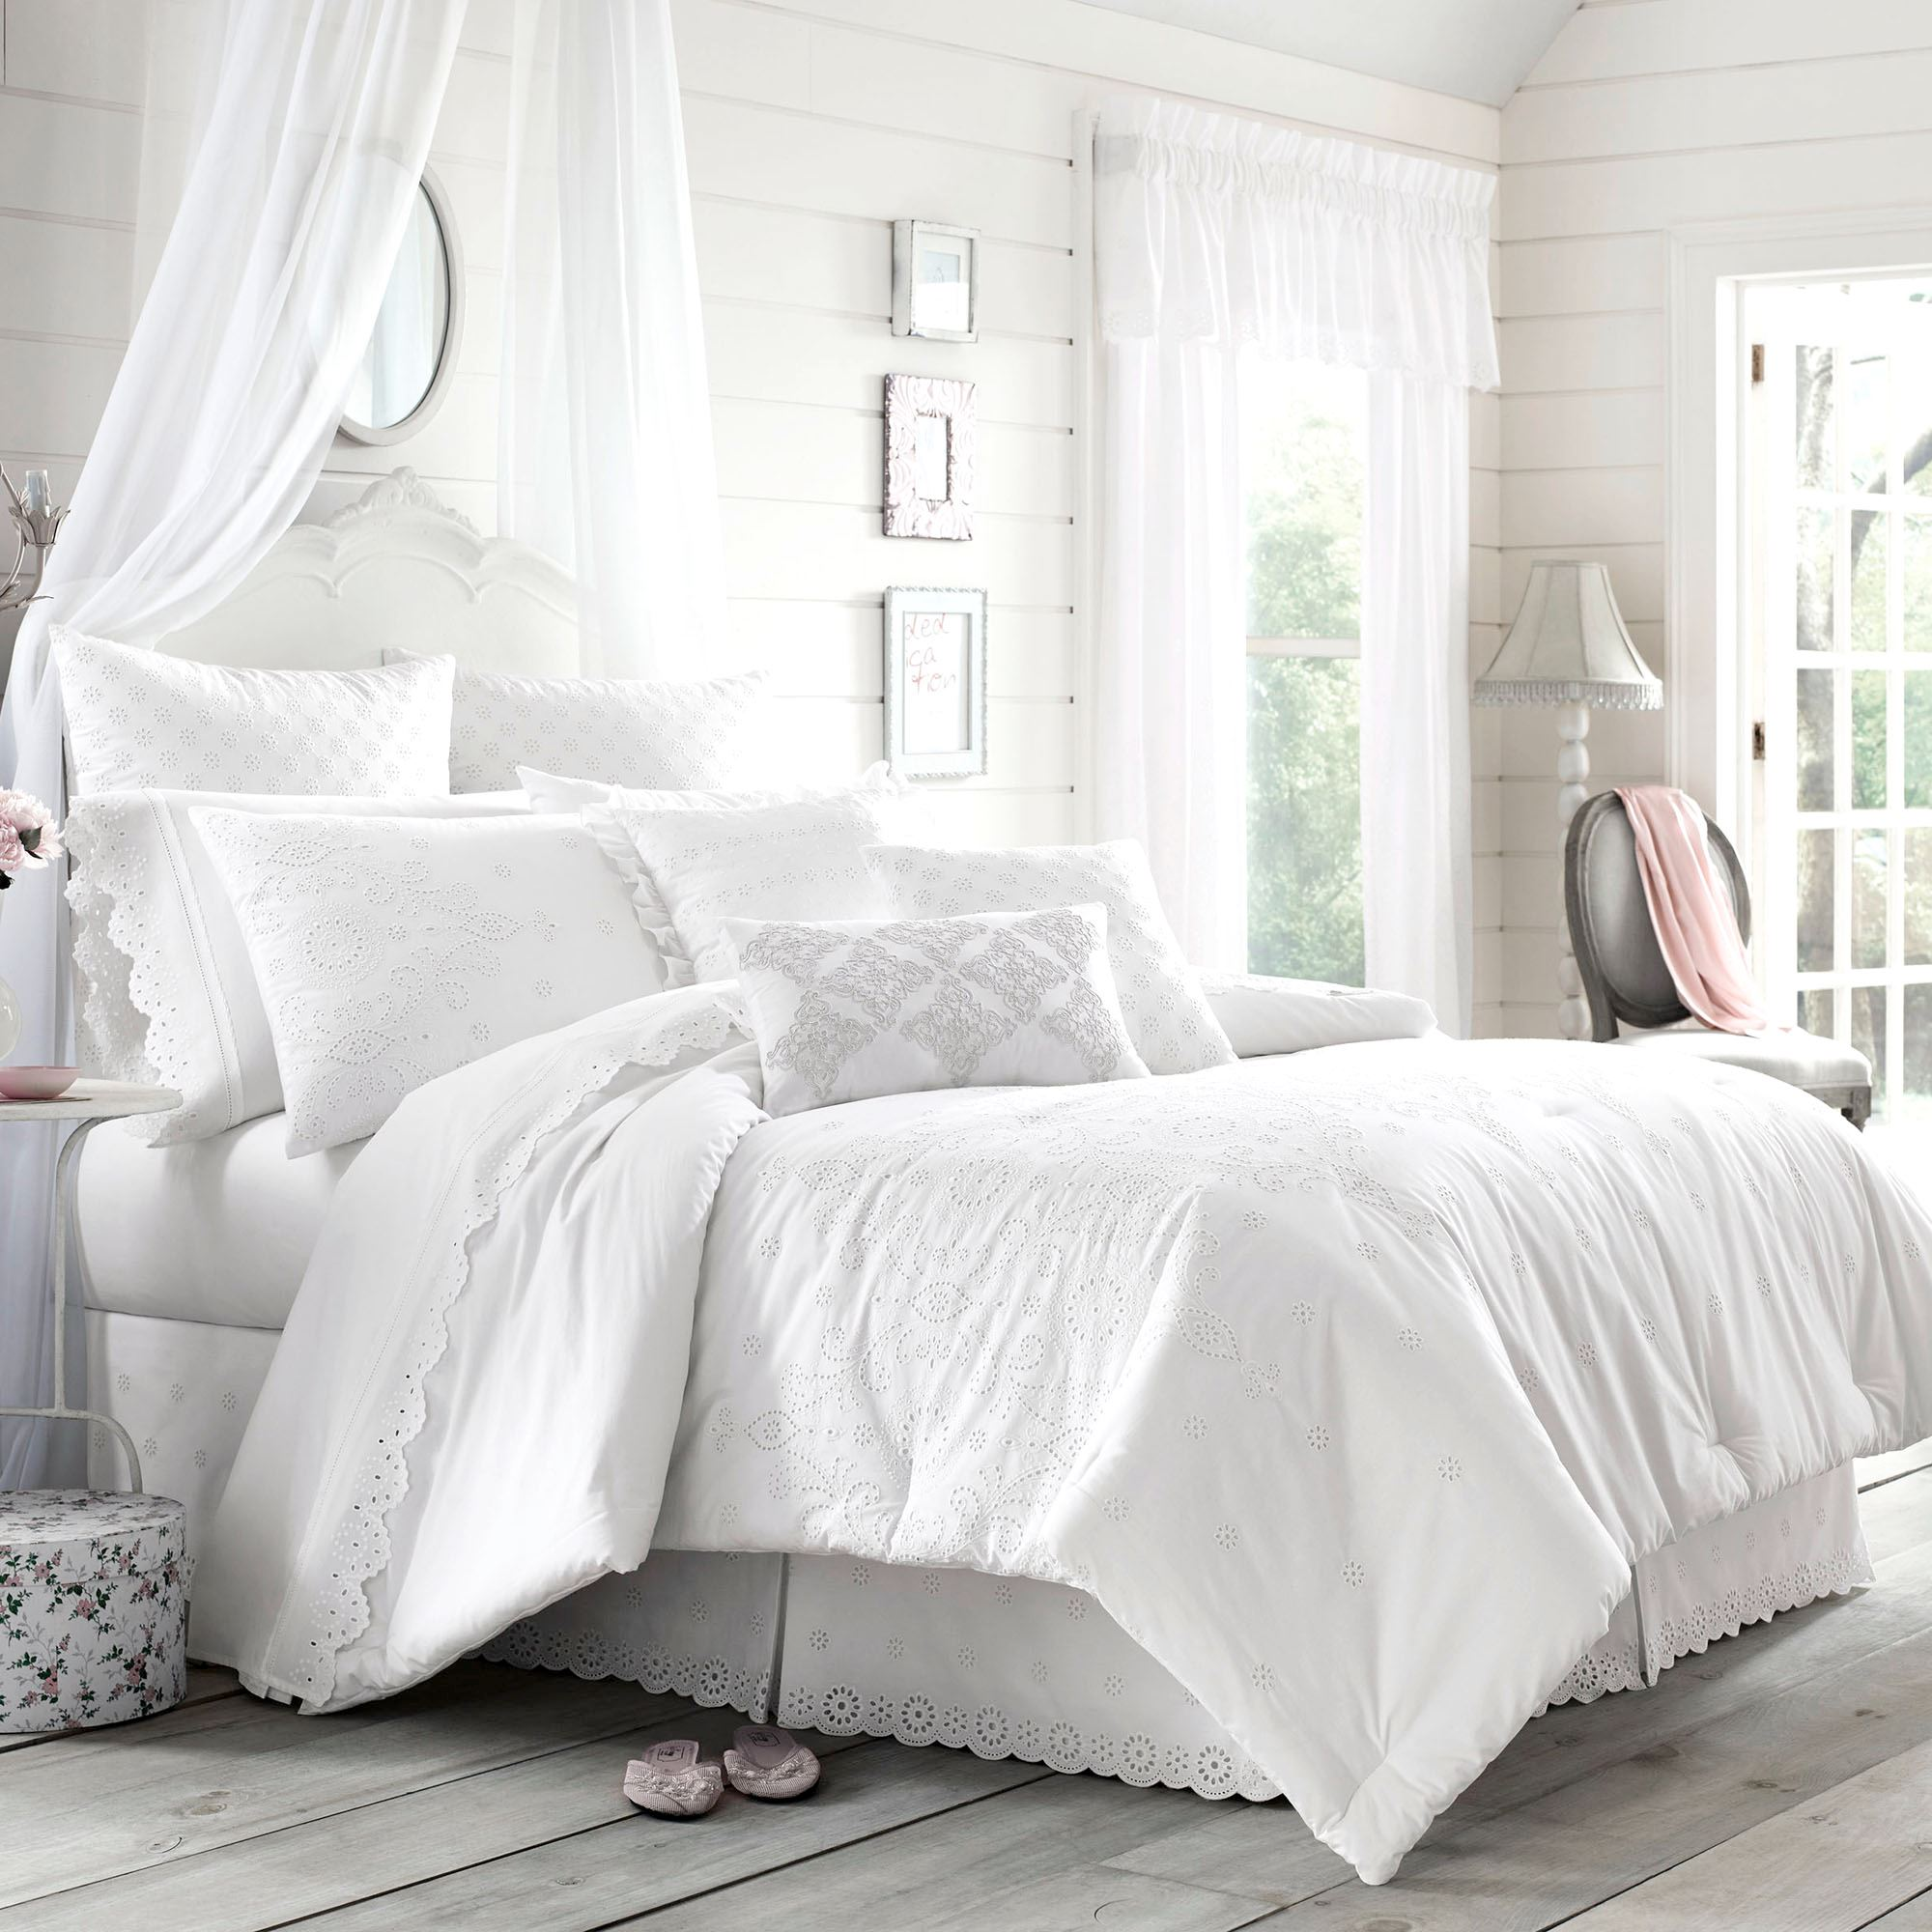 Lucy Eyelet White forter Bedding by Piper & Wright